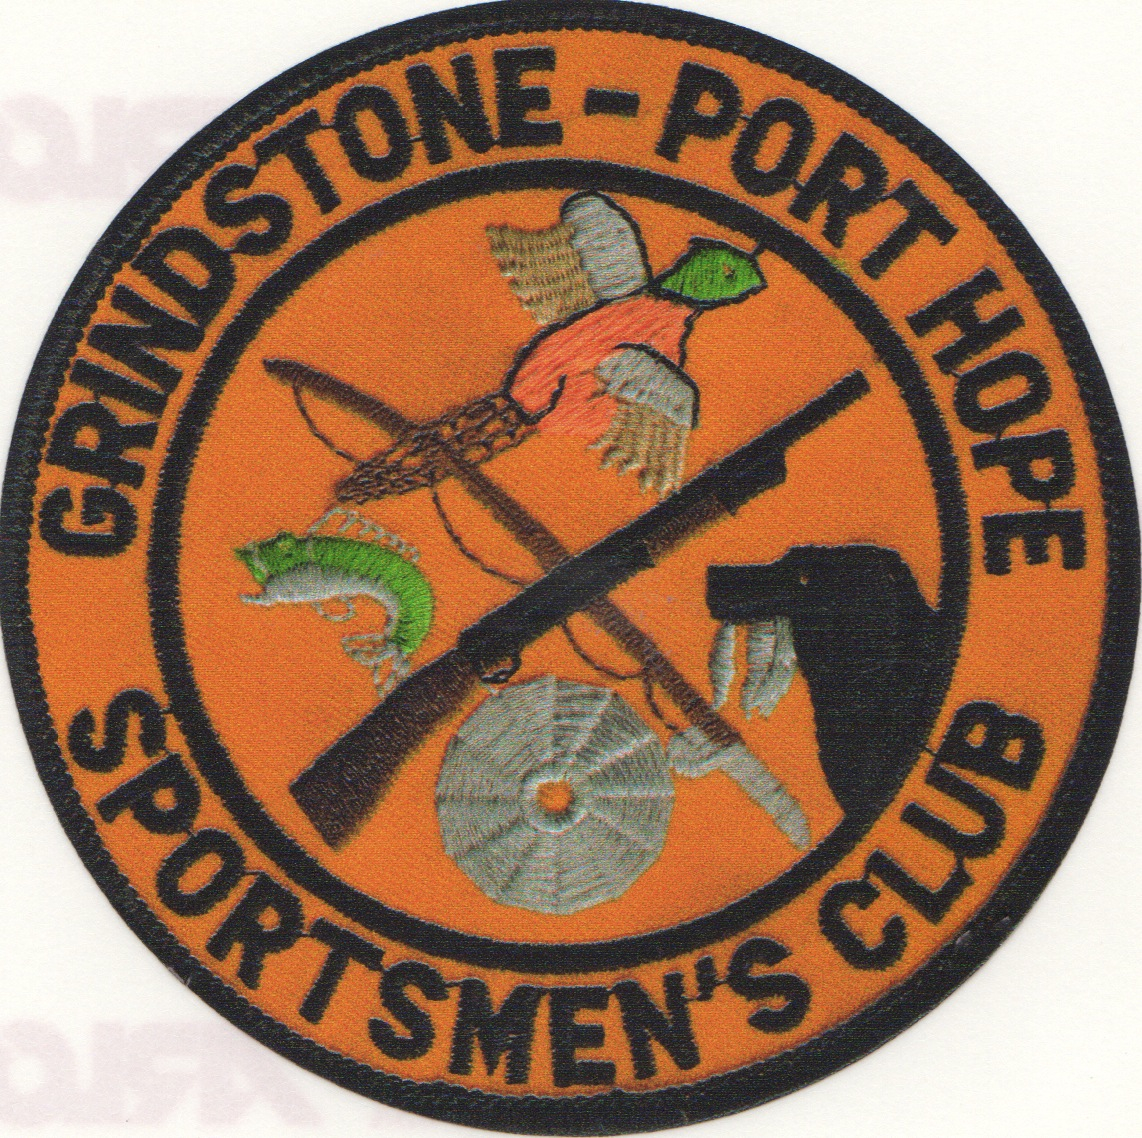 Port Hope-Grindstone Sportsmen's Club